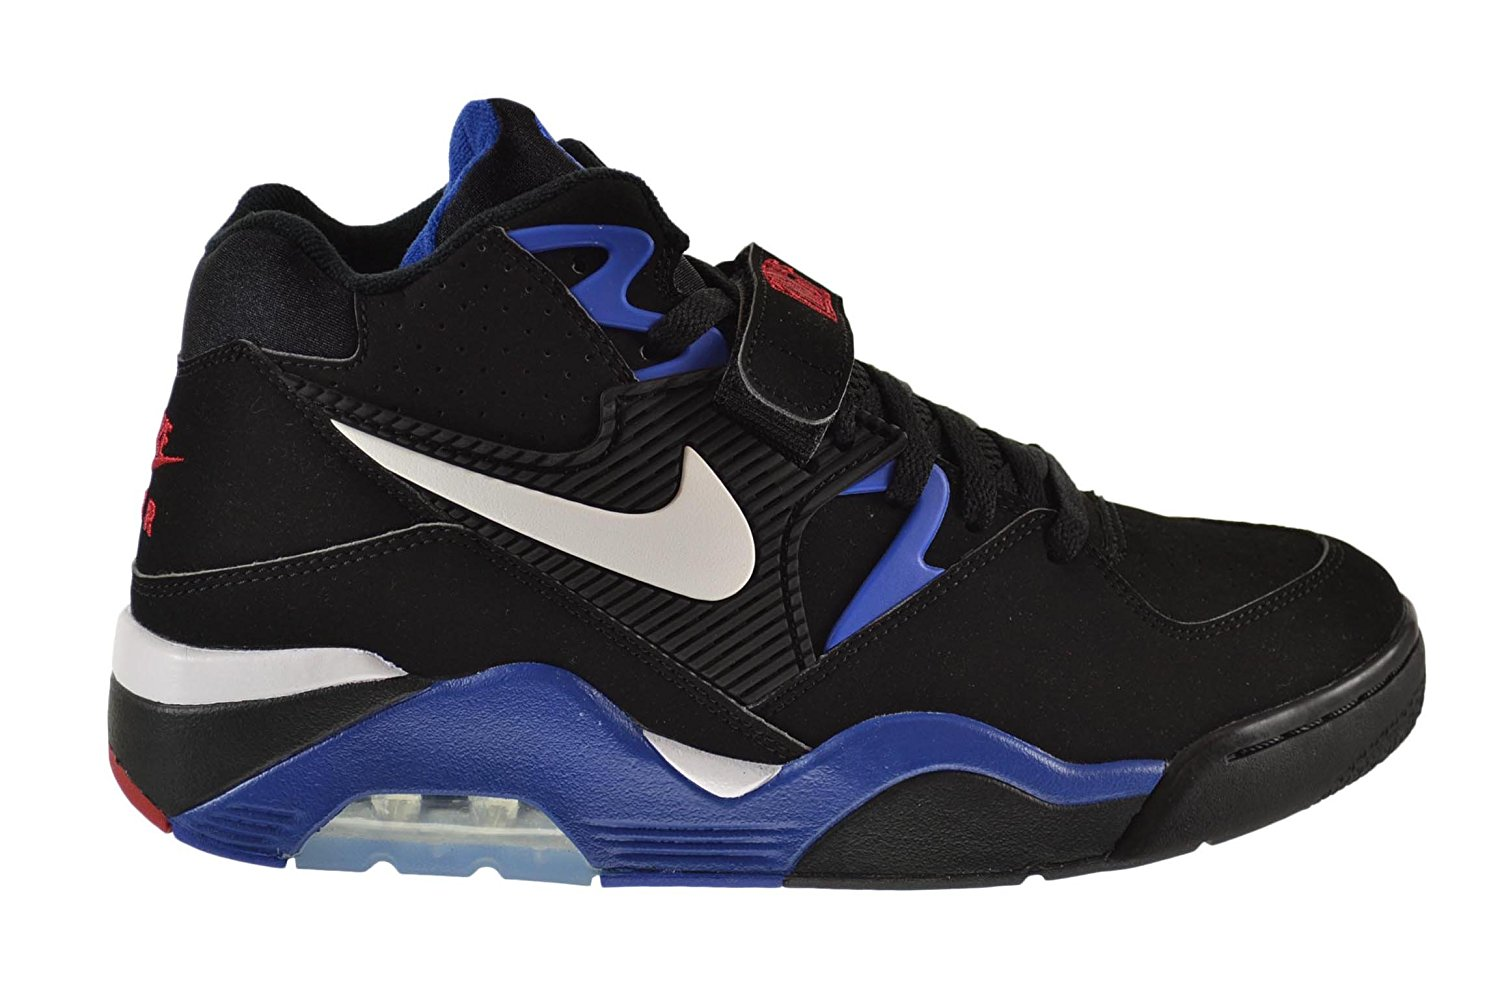 f80f432b4c Get Quotations · Nike Air Force 180 Men's Shoes Black/White-Sport  Royal-Varsity Red 310095